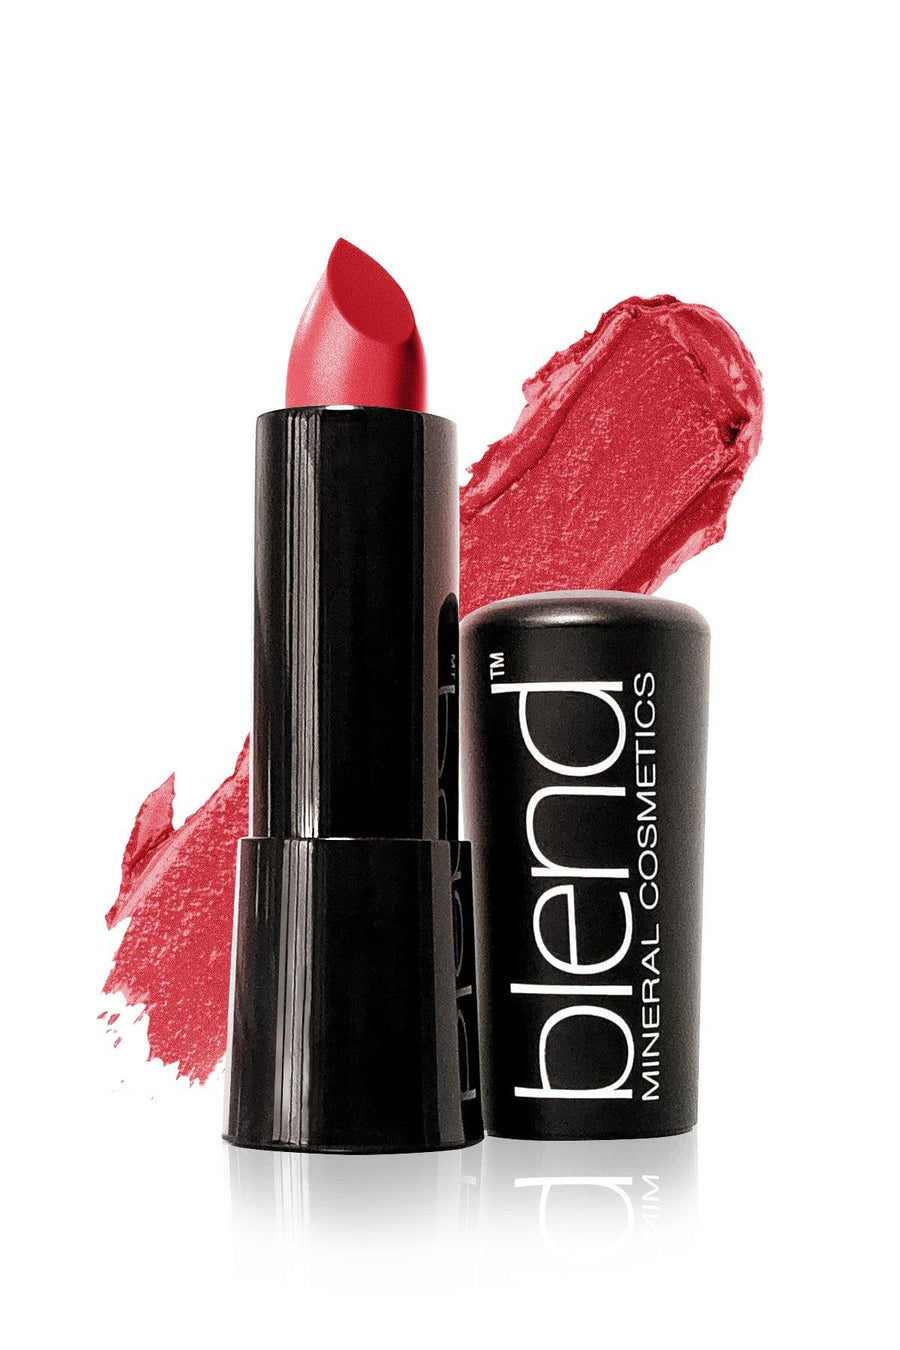 Lipstick #6 - Cleo Red - Blend Mineral Cosmetics